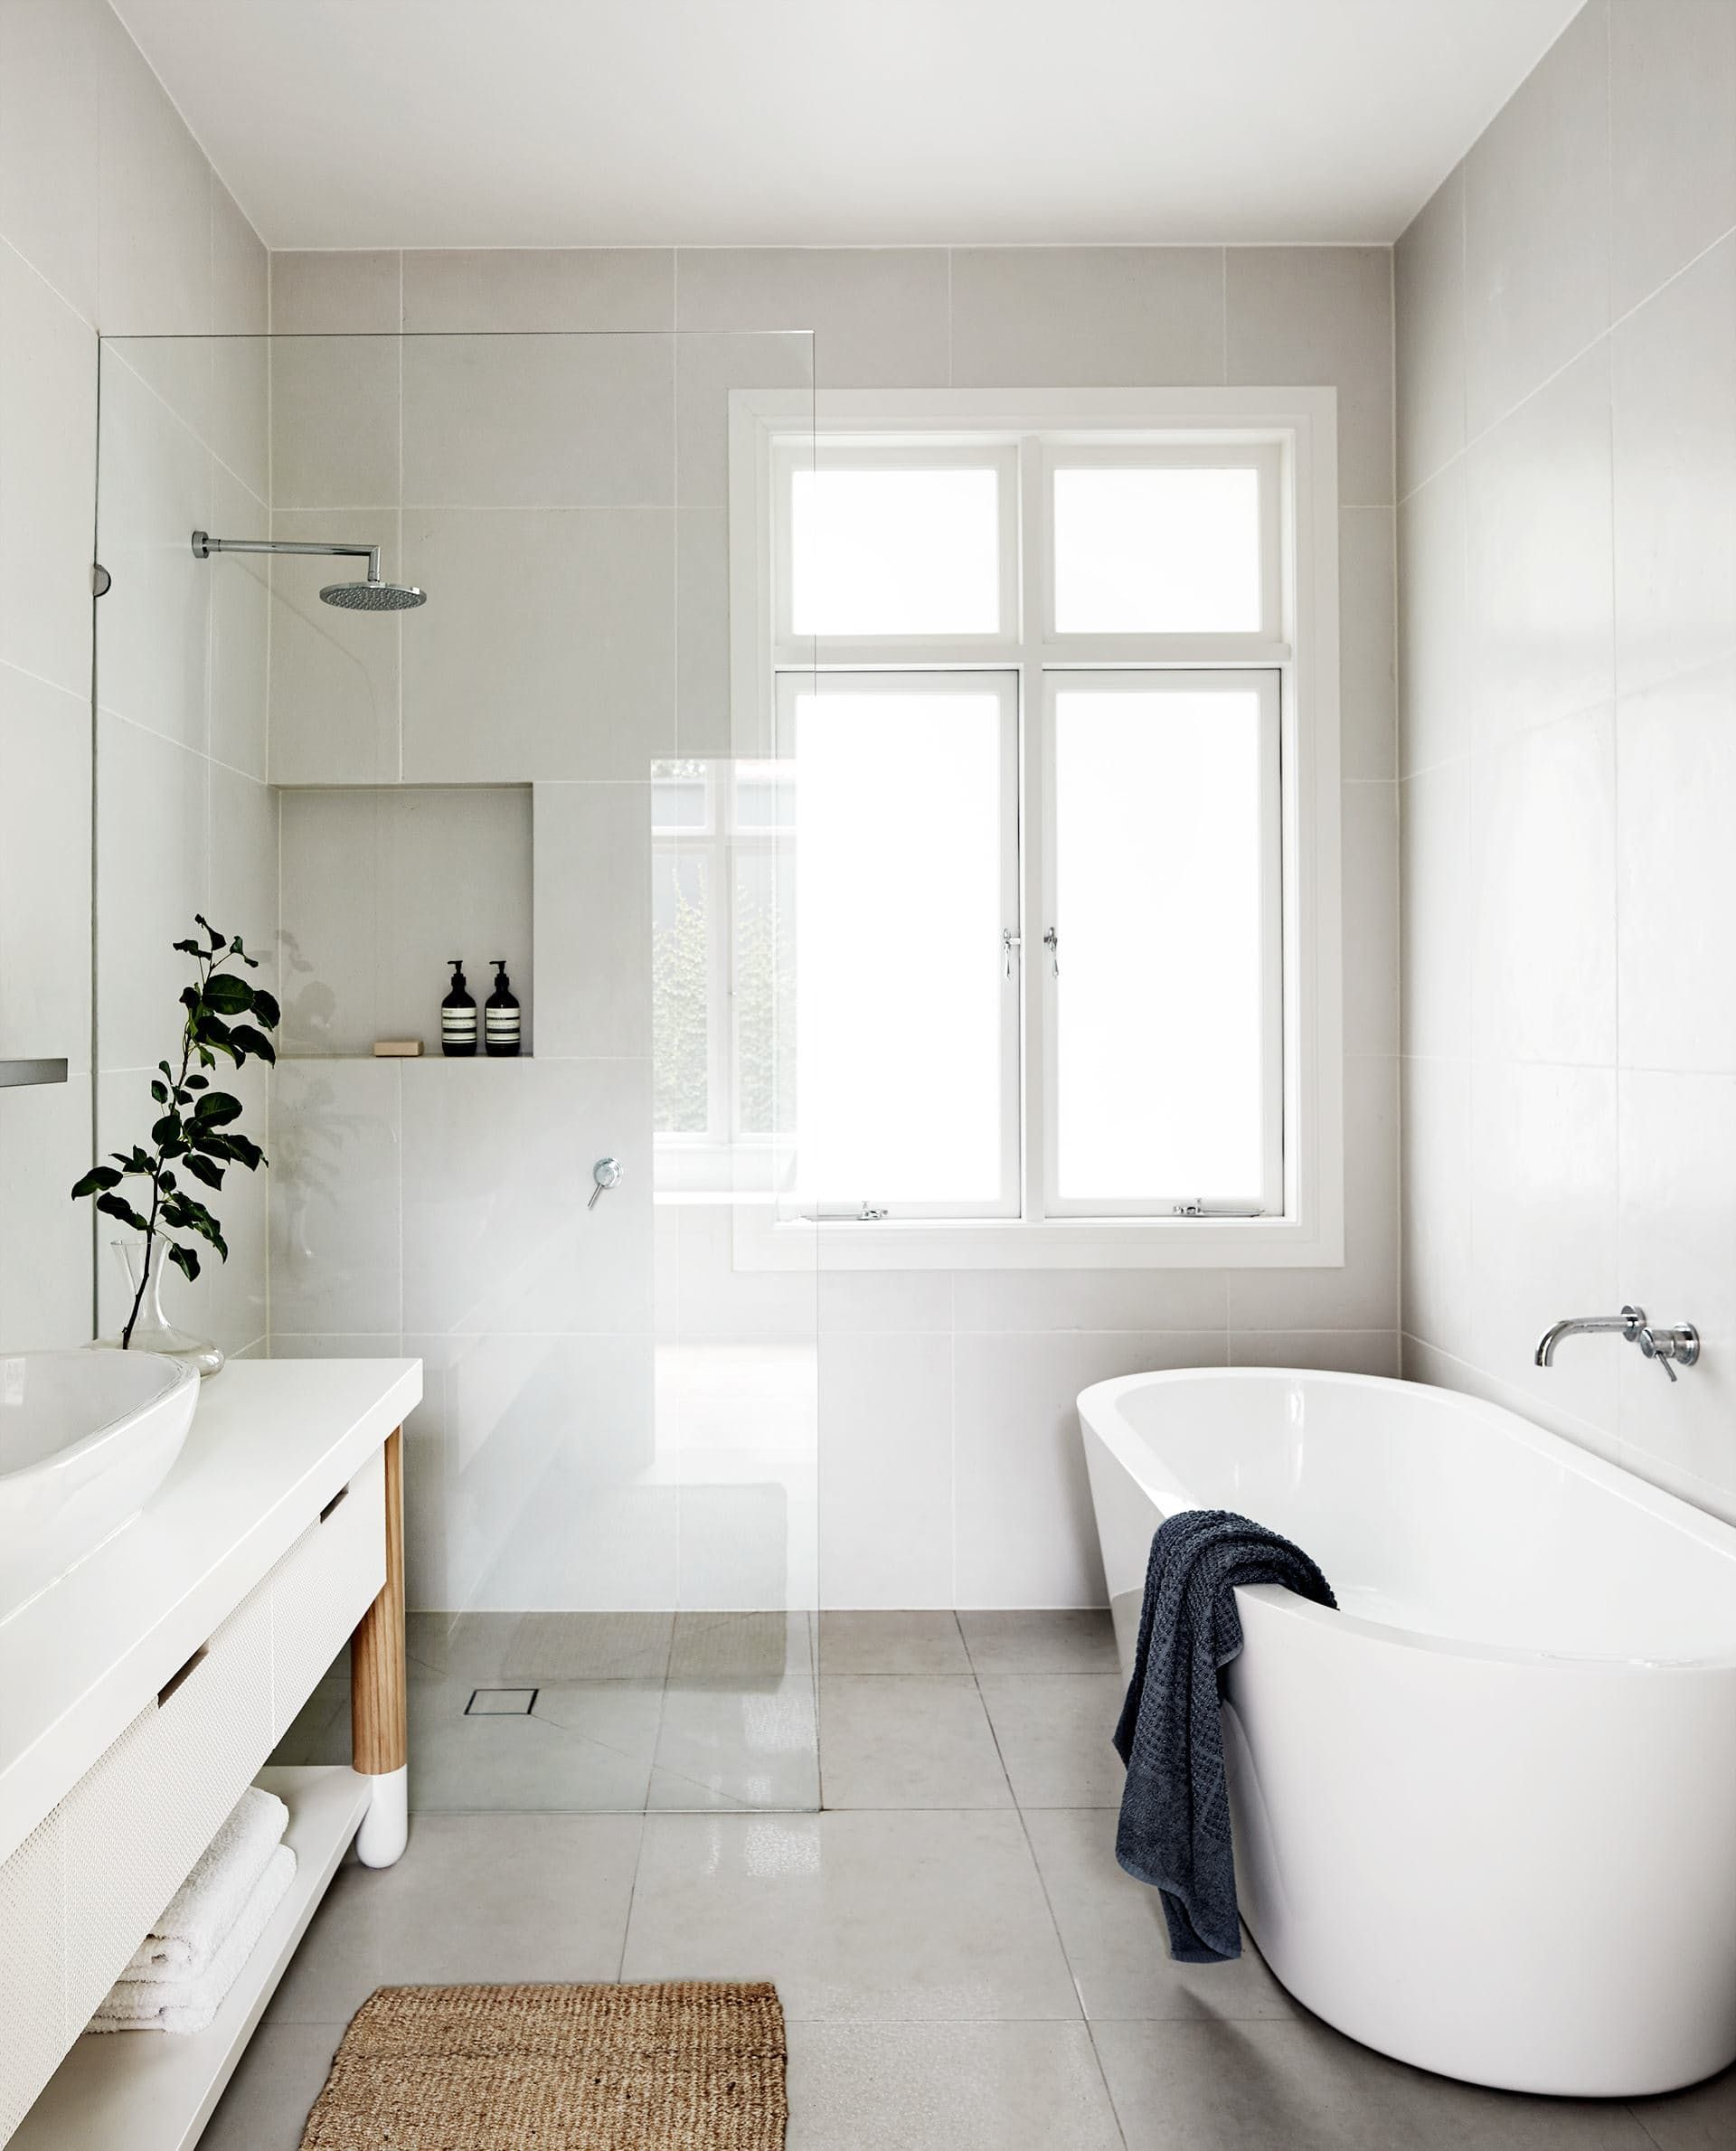 Merveilleux 15 Small Bathrooms That Are Big On Style More